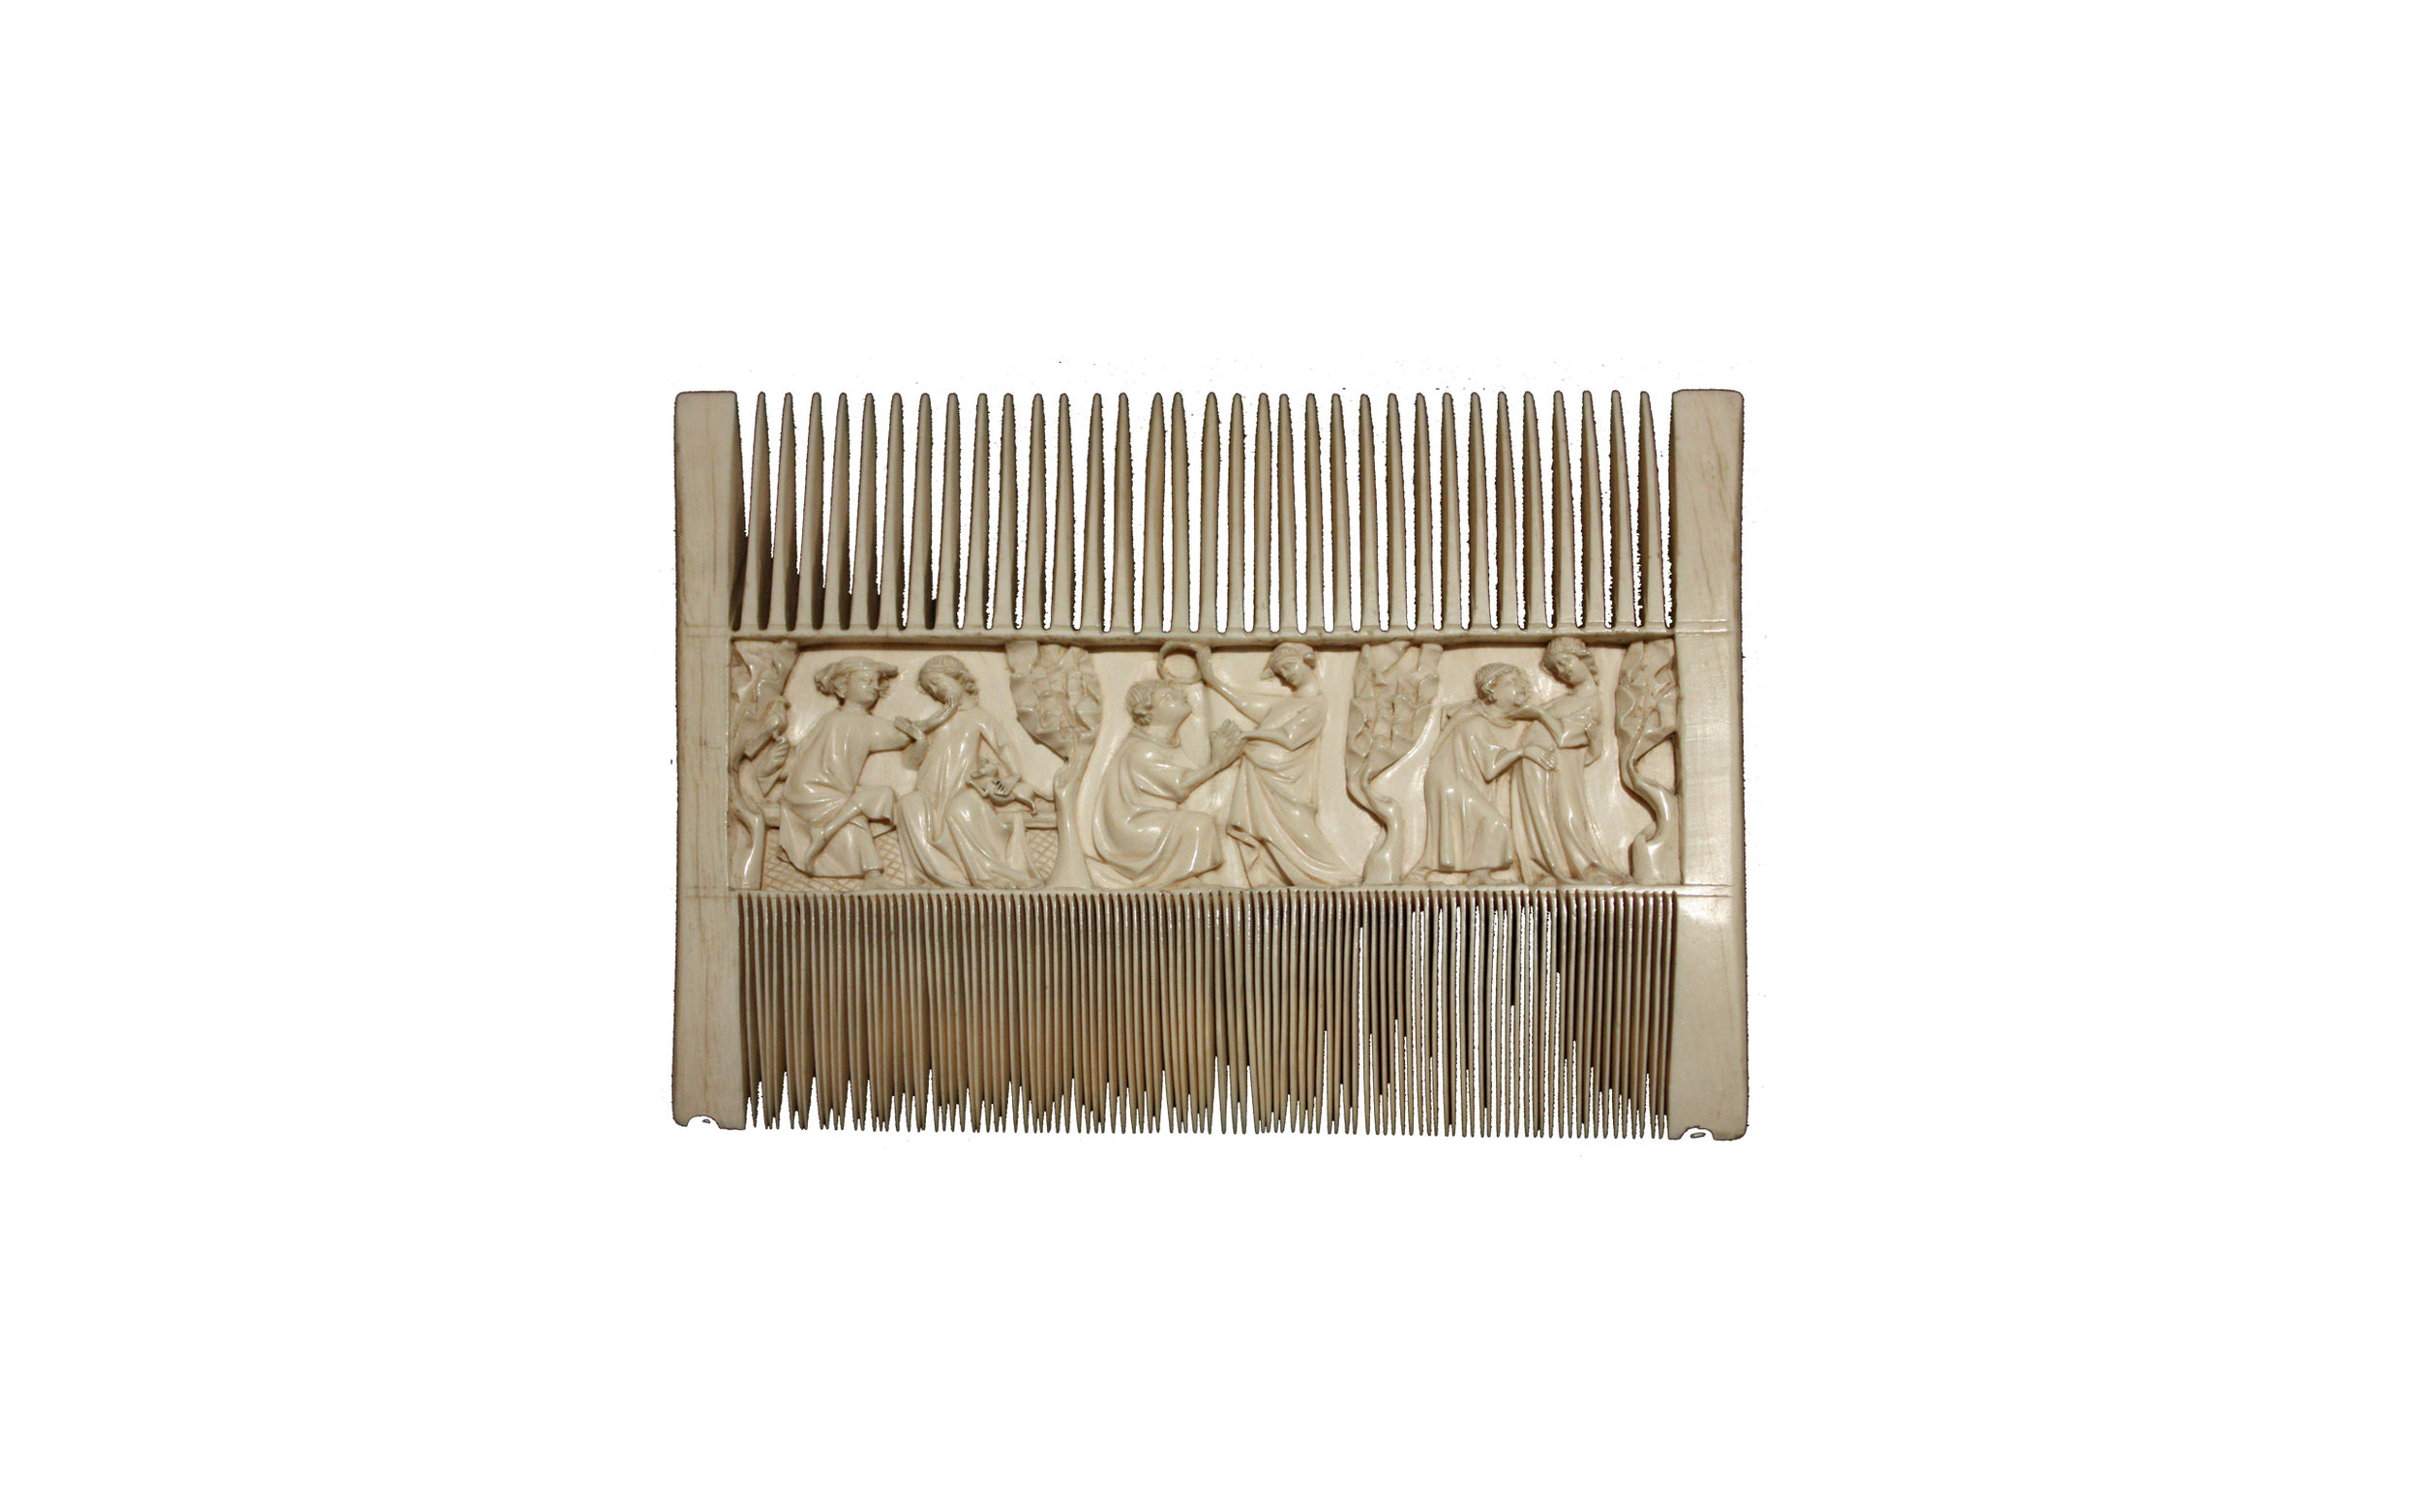 Fig. 10: Double-sided comb with lovers in a garden, 1325-1350, ivory, 28 x 20 mm, made in Paris, The National Gallery, London